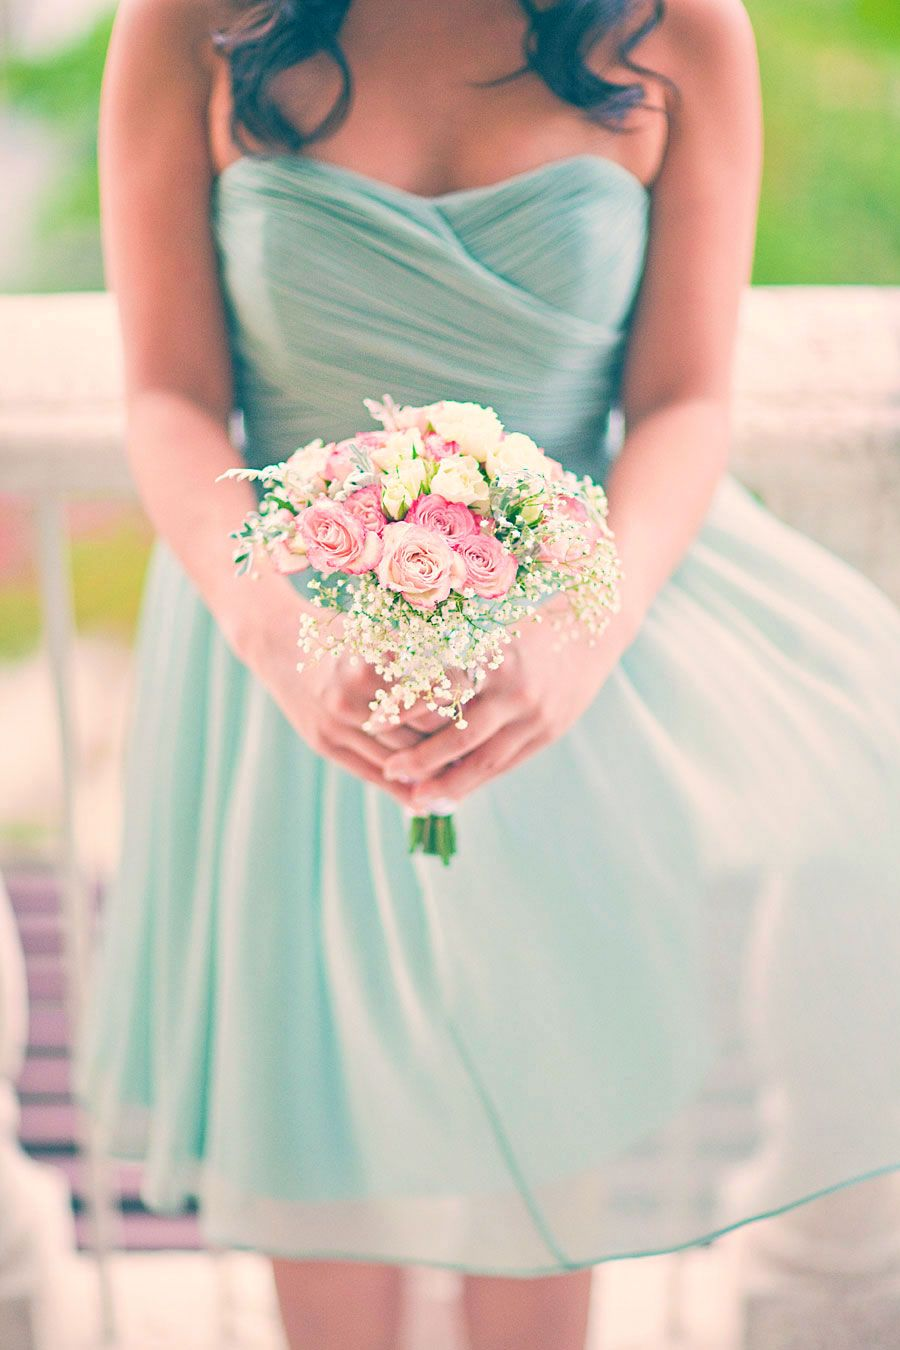 Green Wedding Dress with Flowers